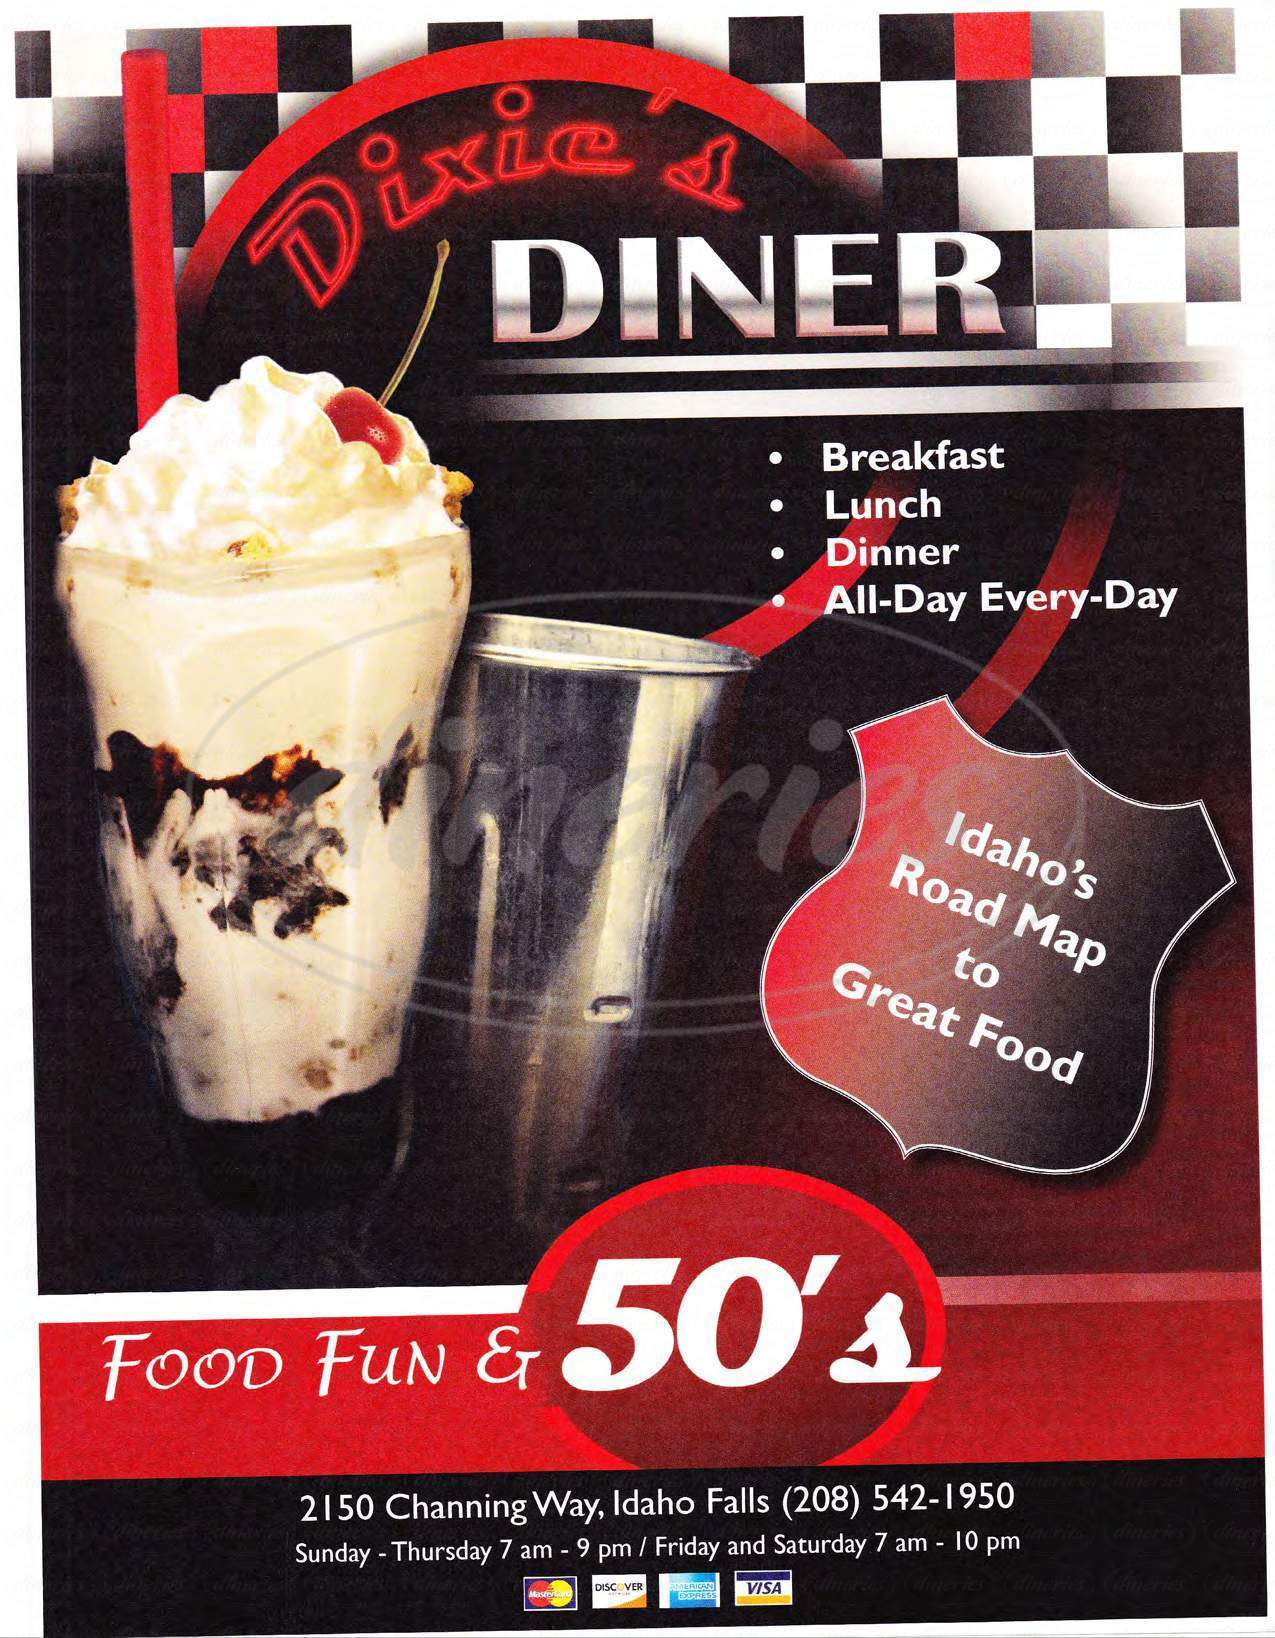 Big menu for Dixie's Diner, Idaho Falls